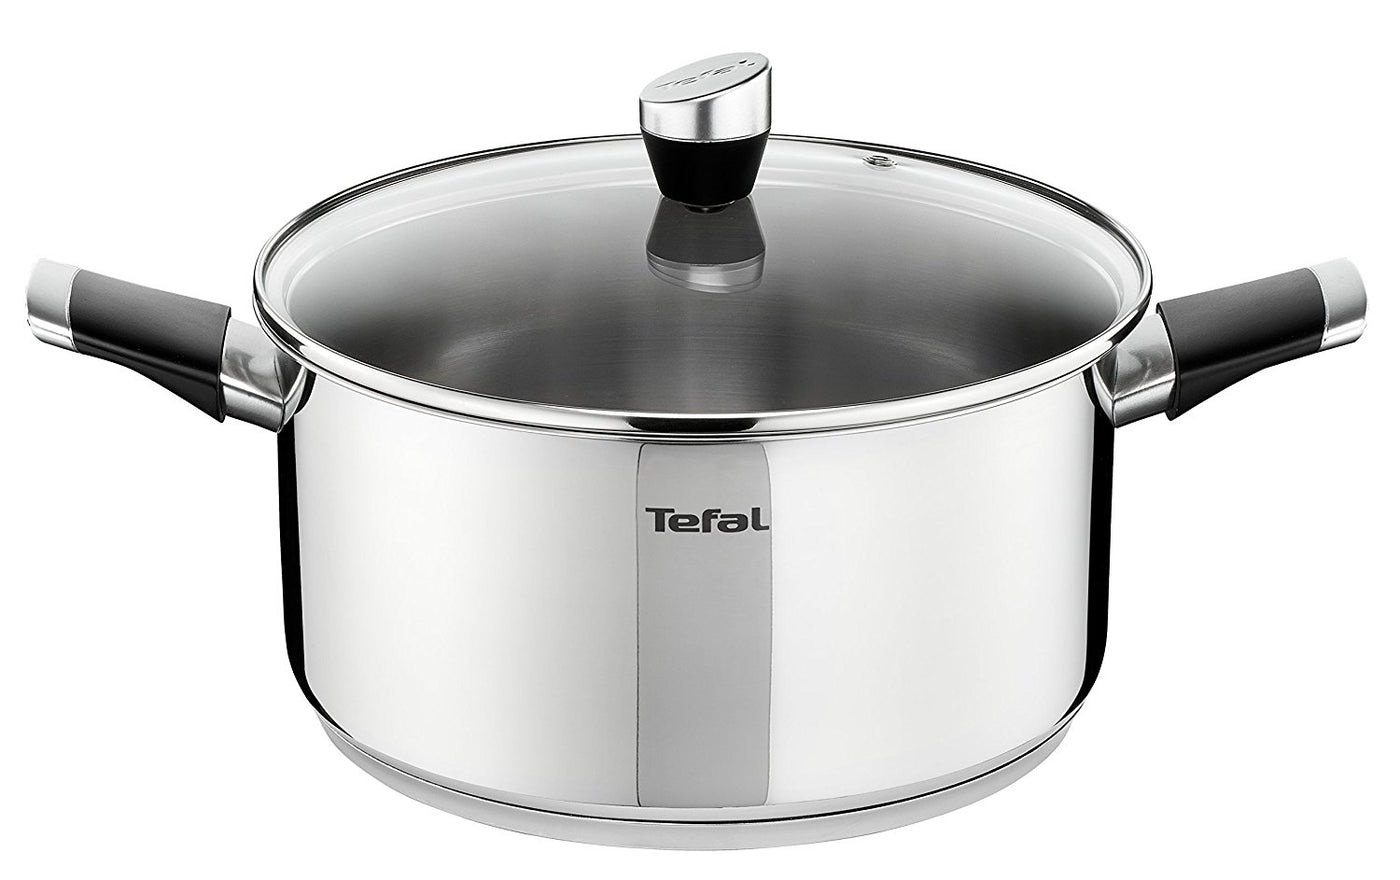 1750036e3 Tefal Emotion Stainless Steel Stew Pot 24cm E8234644 – Jacksons of ...